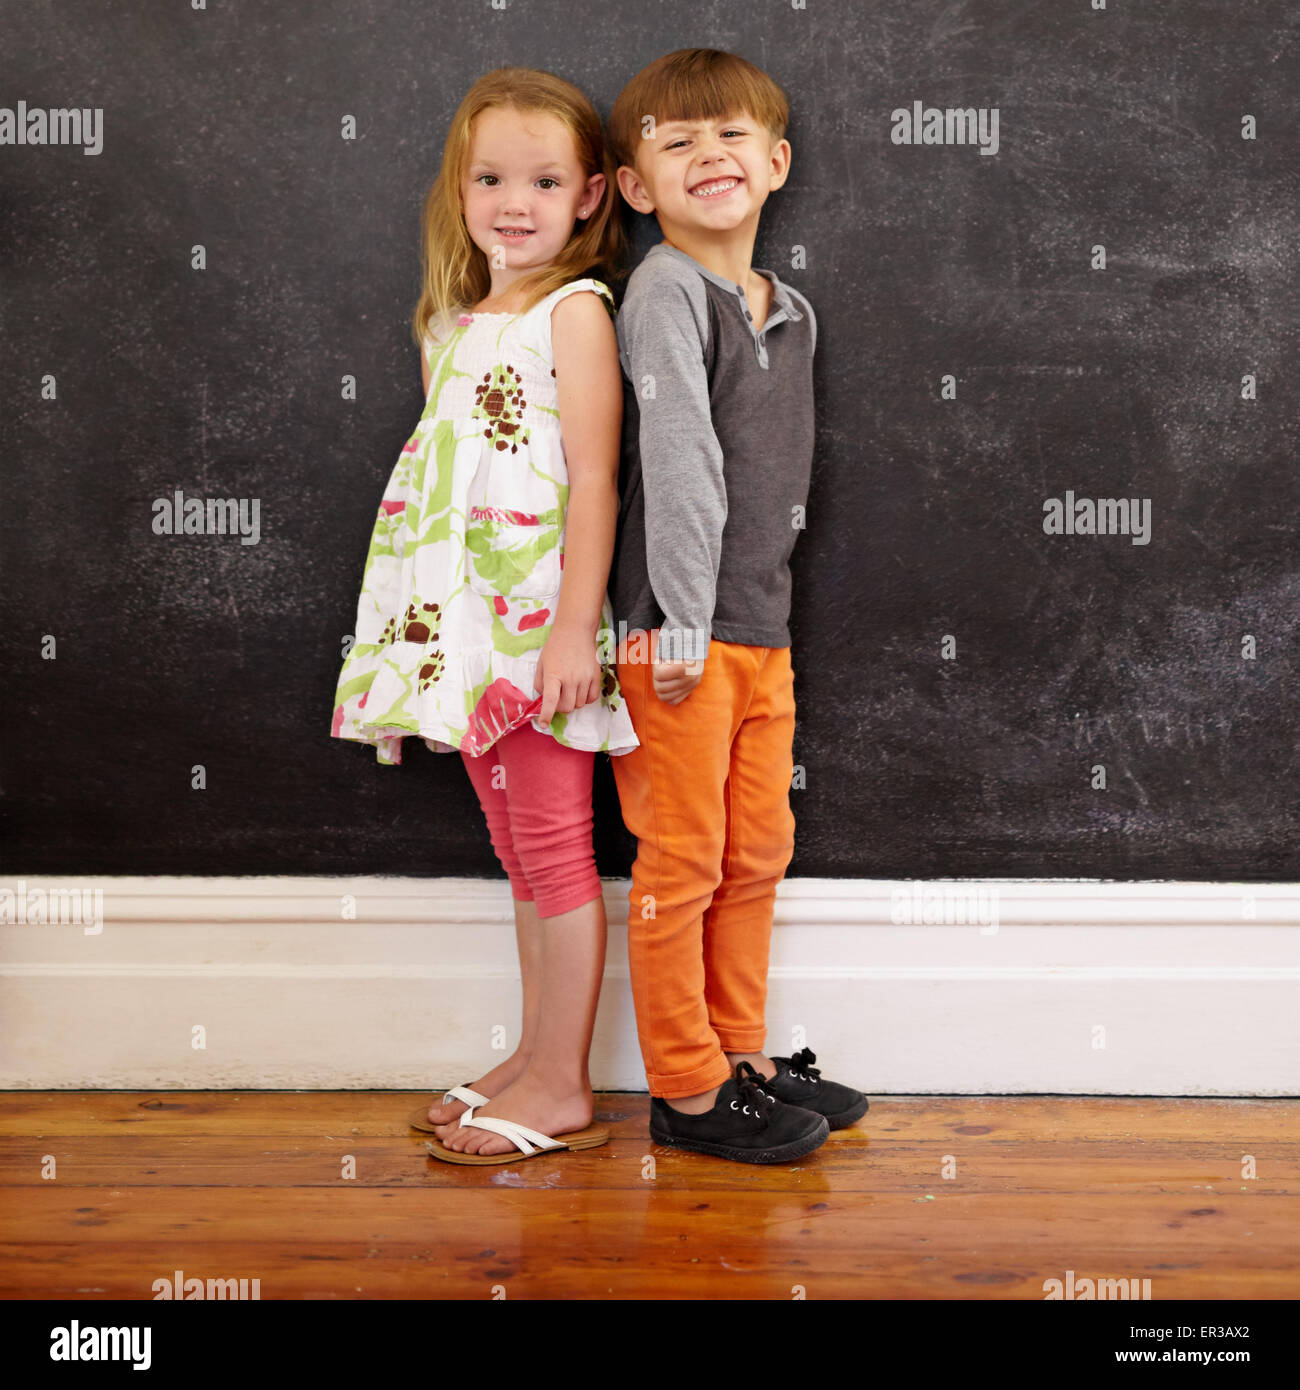 Little boy and girl standing back to back in front of blackboard looking at camera smiling. Full length image of - Stock Image